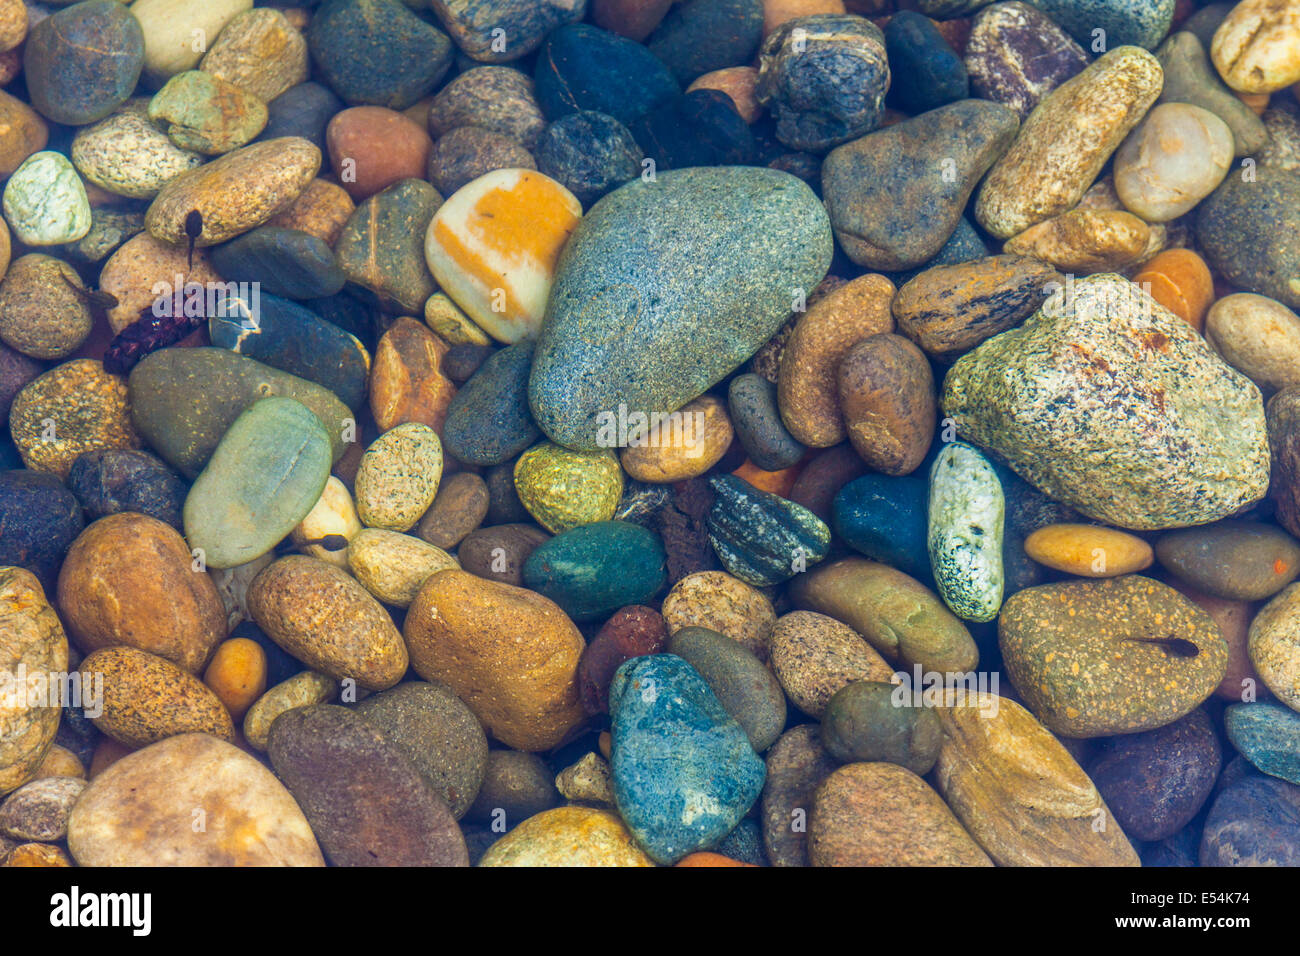 Tadpoles swimming in a stream of coloured pebbles - Stock Image